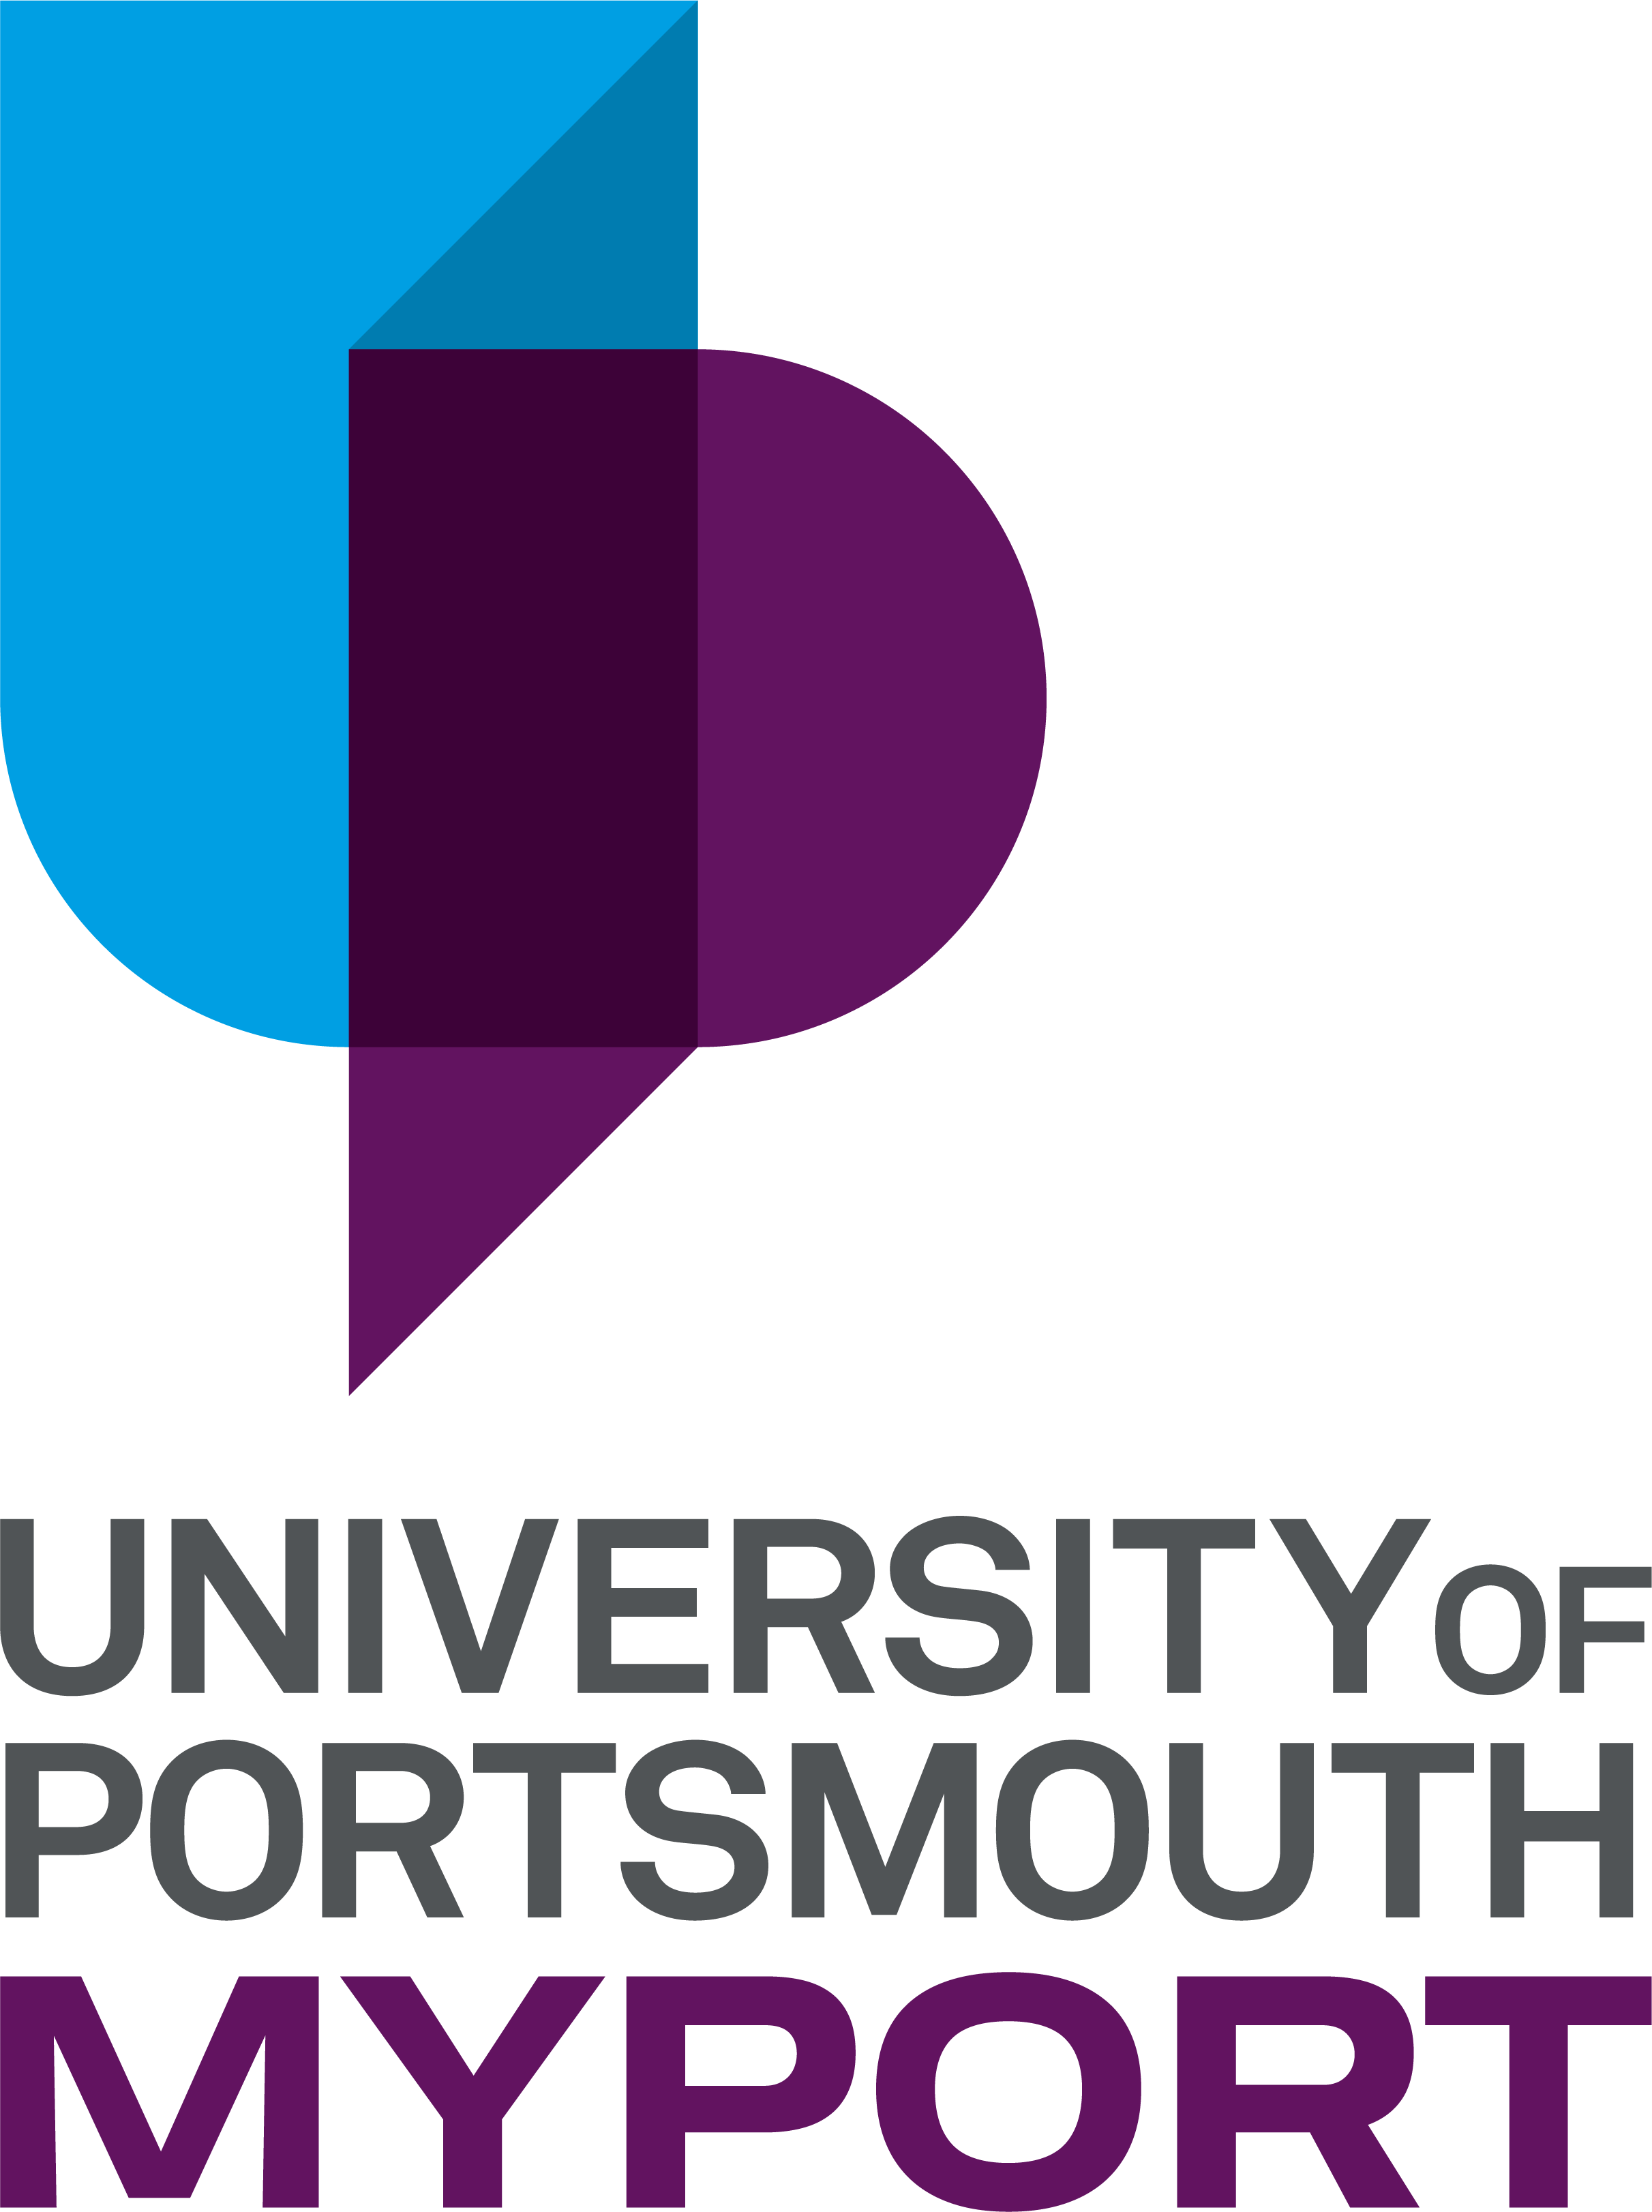 University of Portsmouth - MyPort